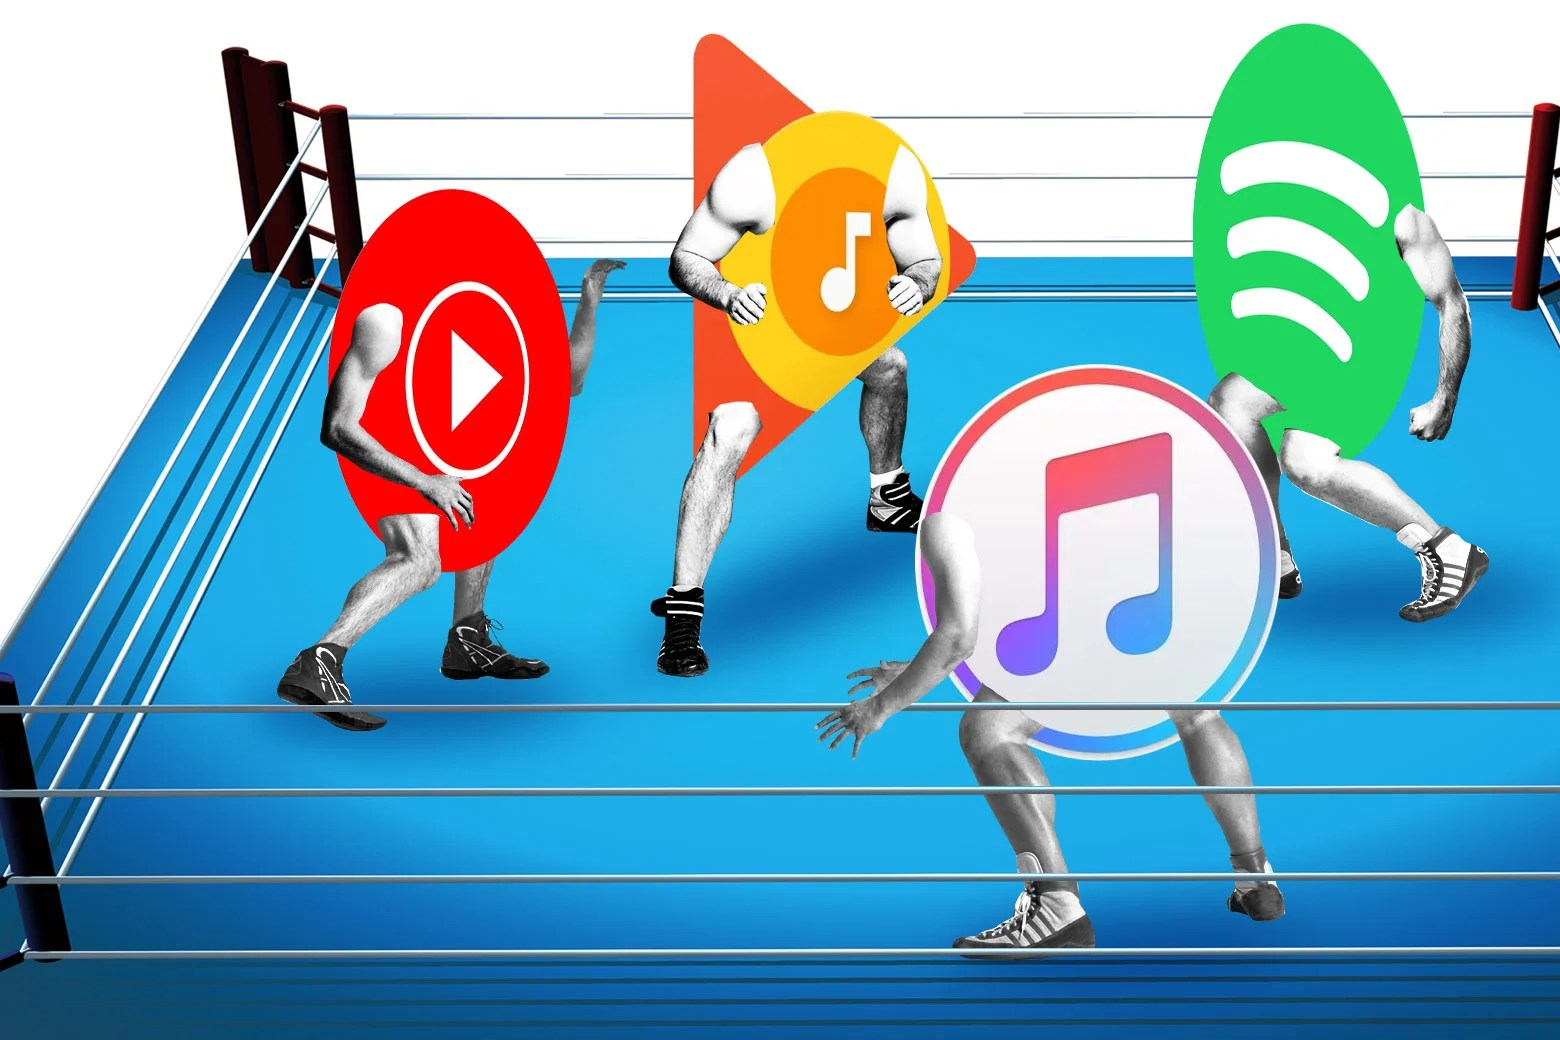 YouTube Remix  Is Google preparing to challenge Spotify and Apple Music  YouTube  Google Play  Spotify  and Apple logos wrestling